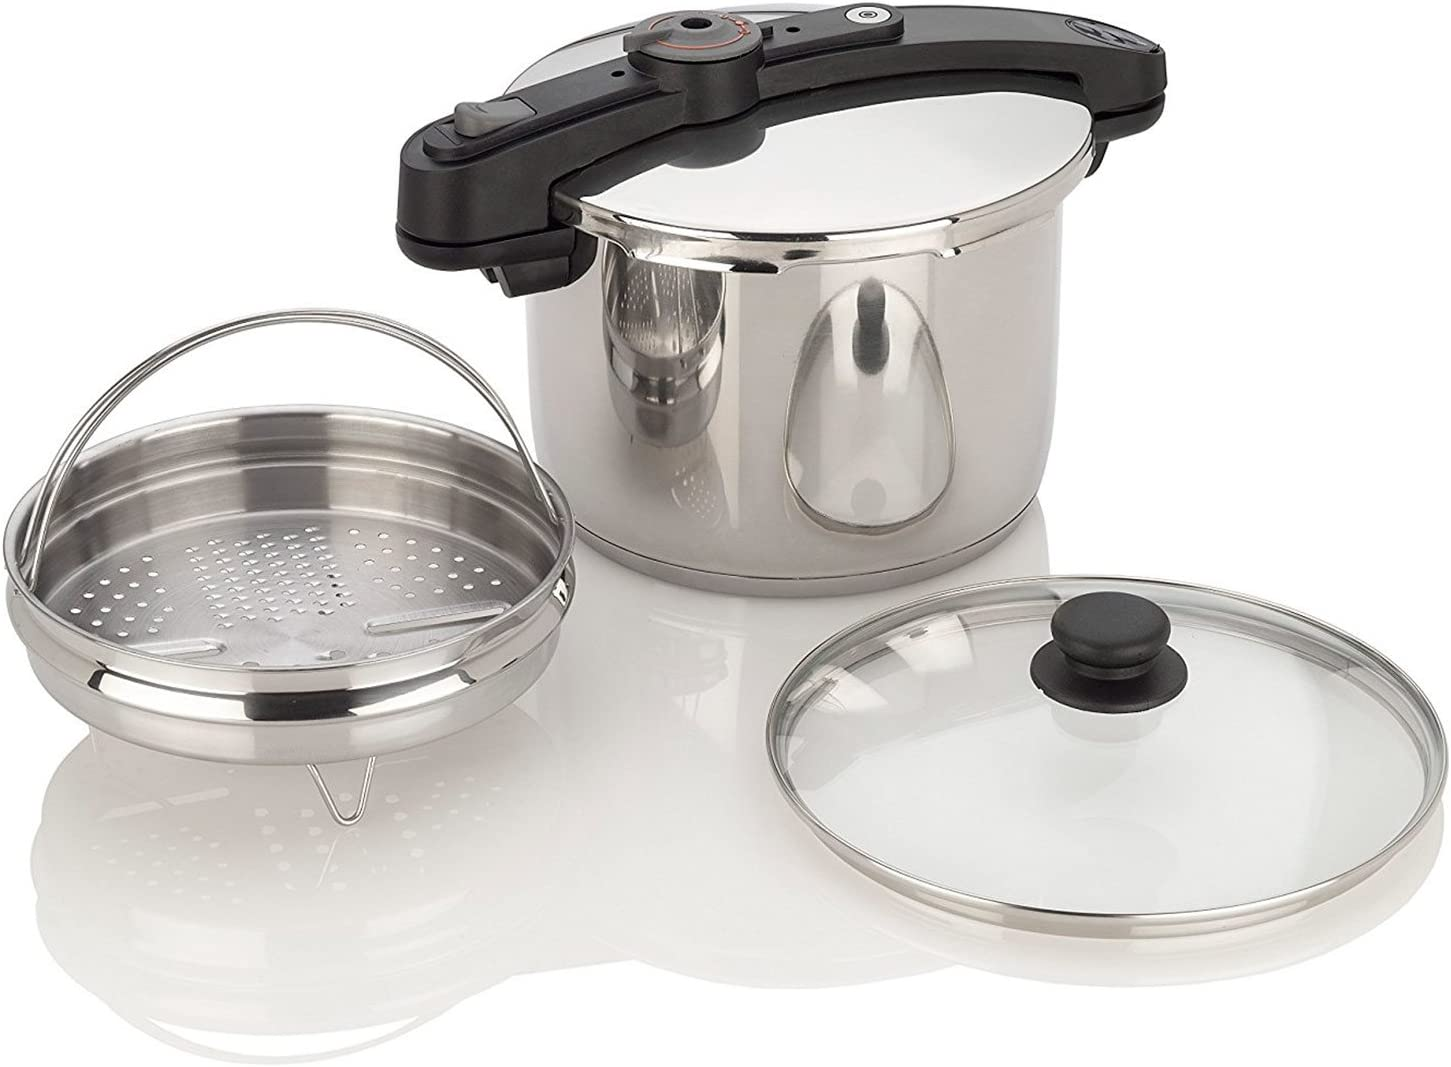 best prices and freshest styles Fagor Chef Pressure Cooker ...